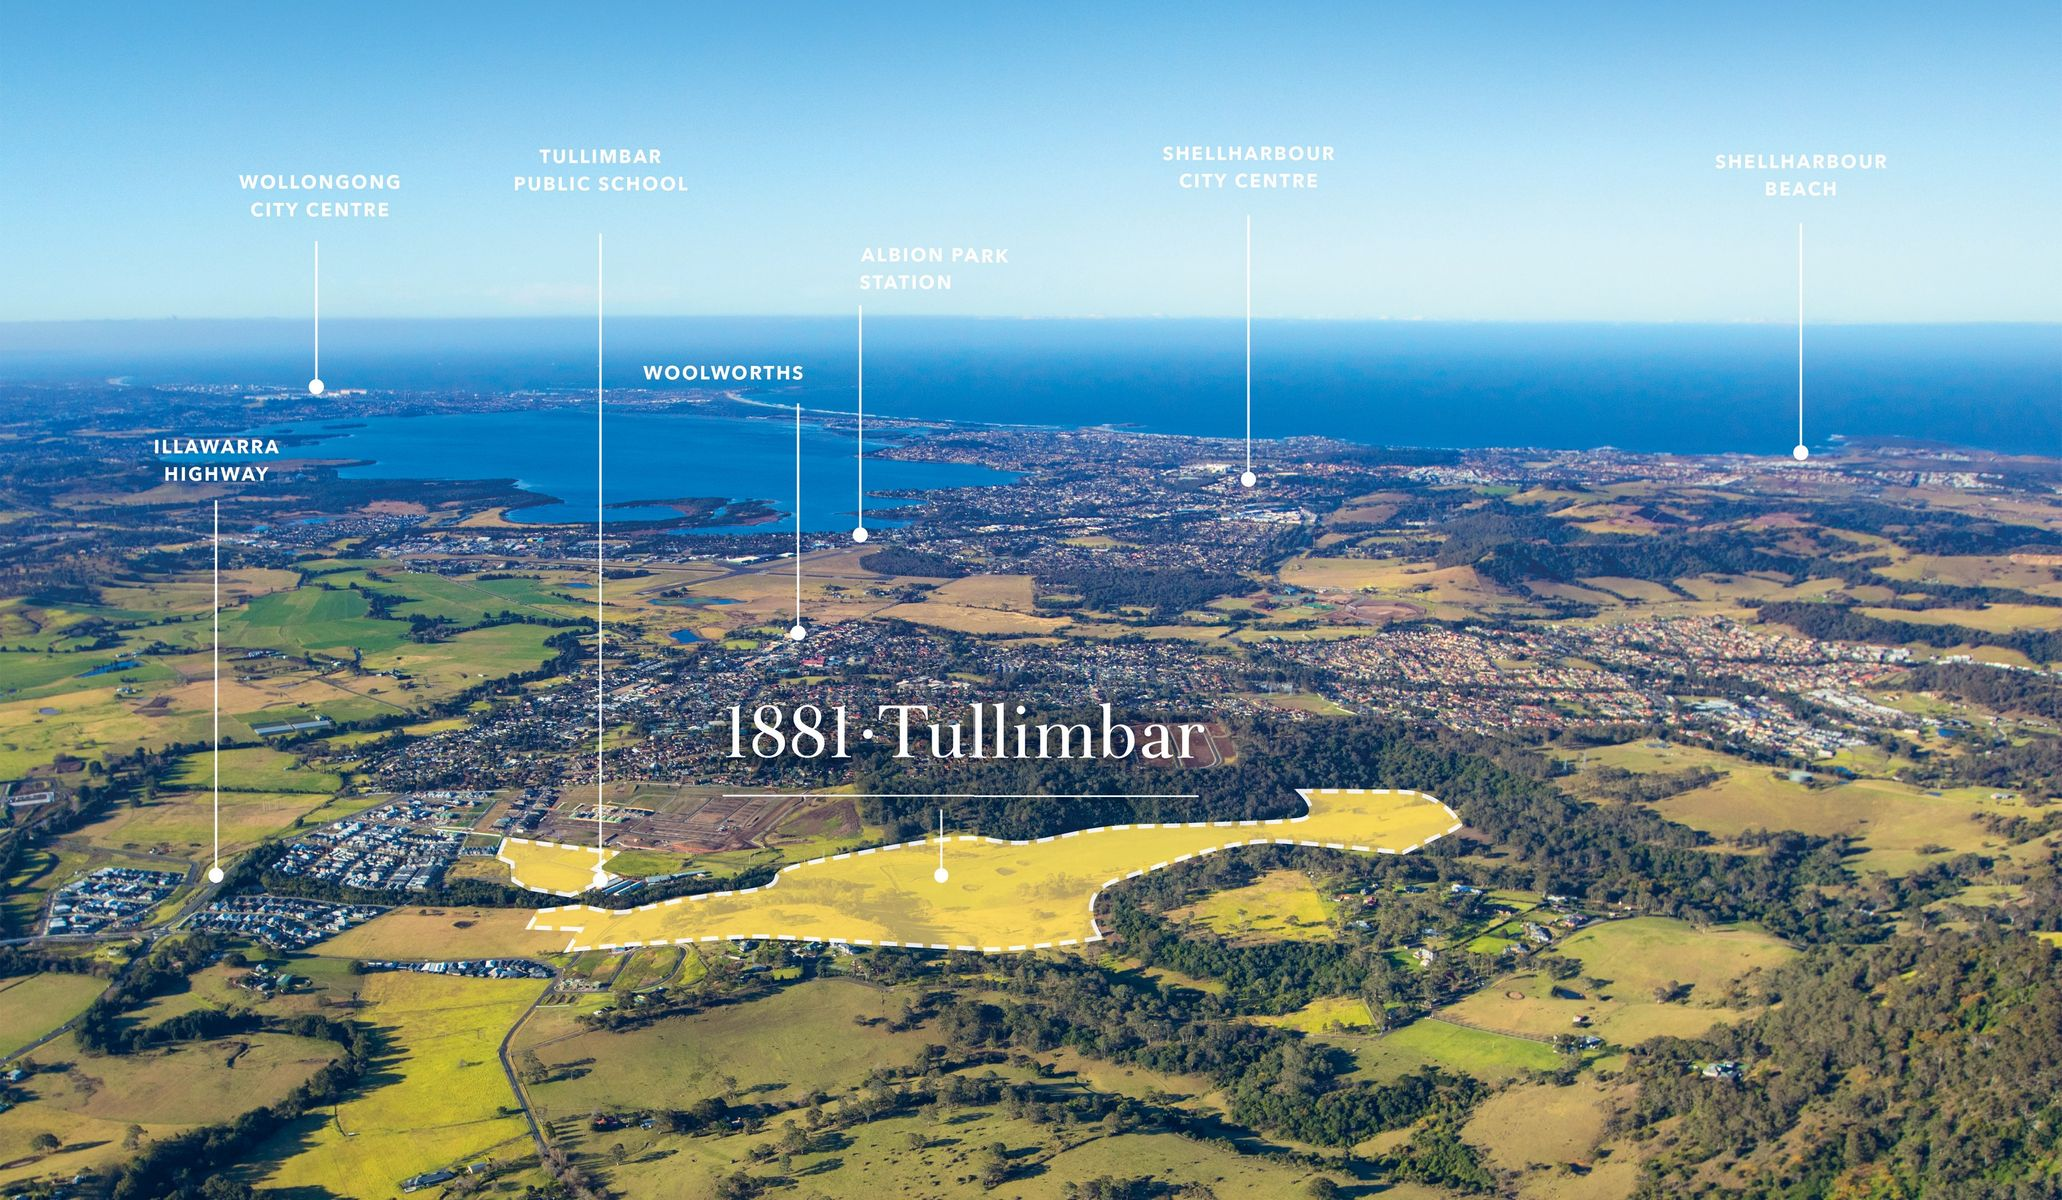 Lot 12 Kite Flyer Release, Tullimbar, NSW 2527